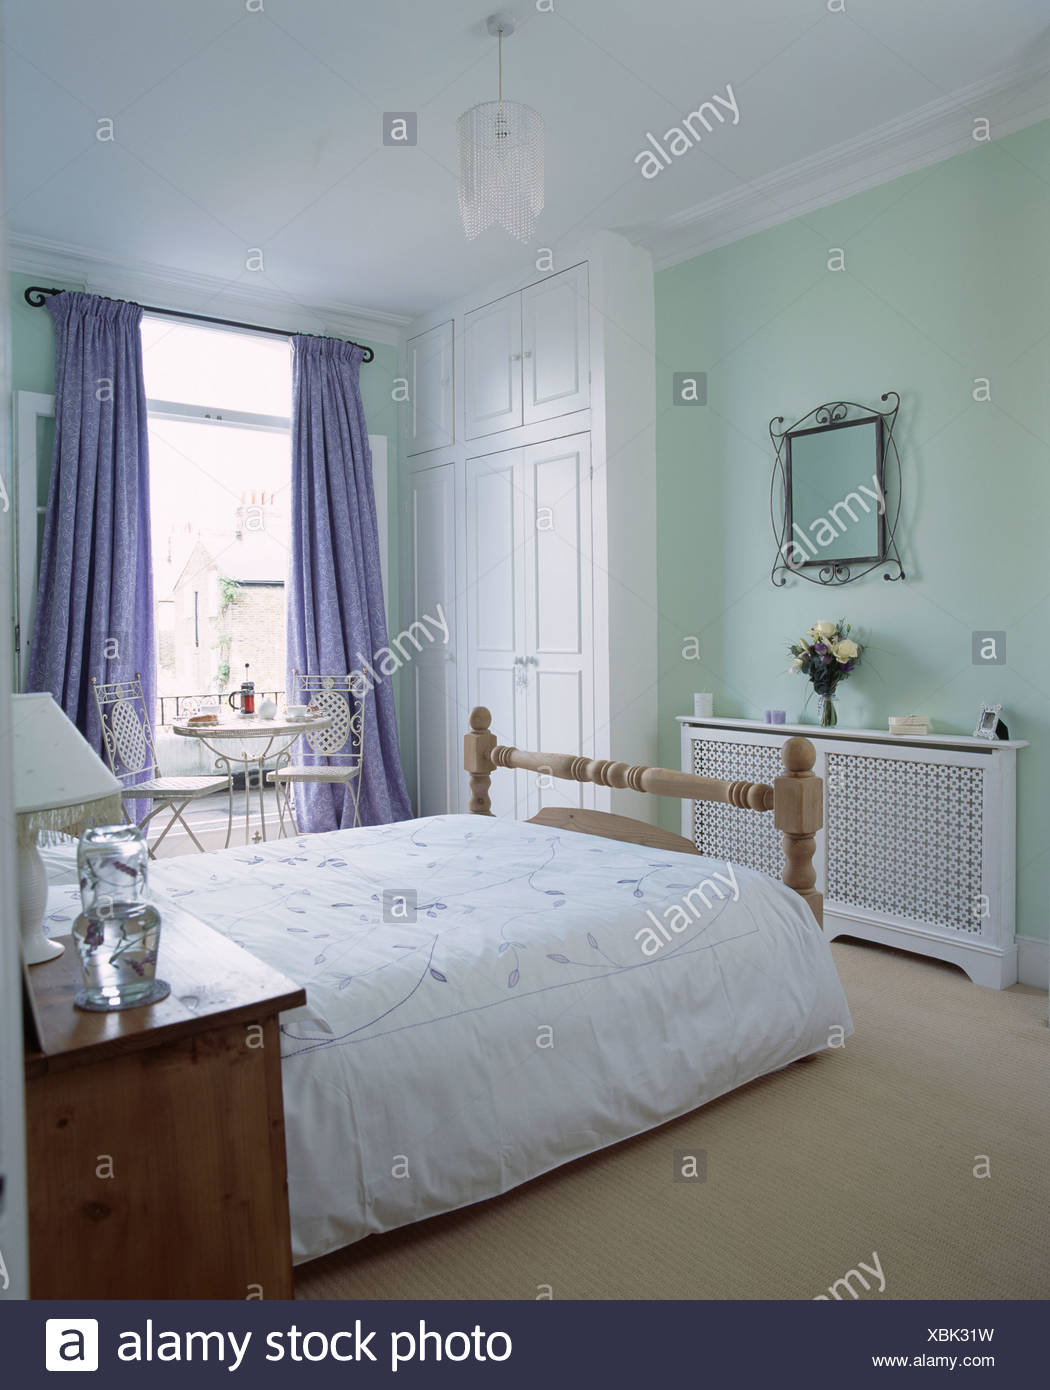 White Duvet On Bed In Pastel Green Bedroom With Fretwork Radiator Cover And Small Table And Chairs In Front Of Window Stock Photo Alamy